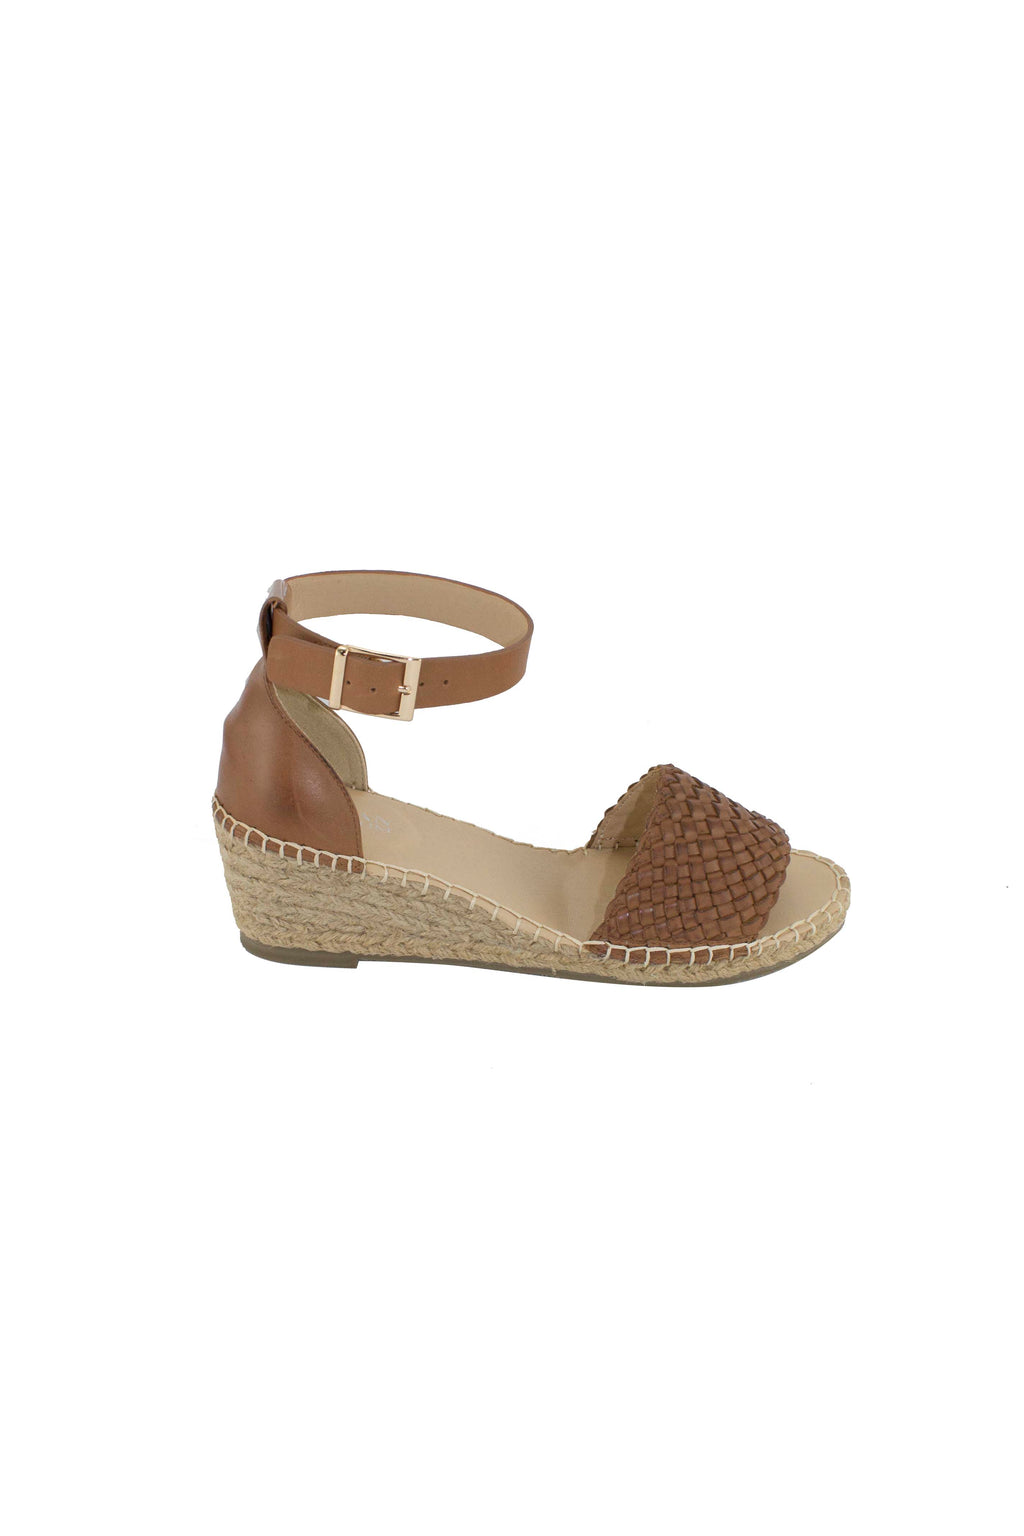 Habit Woven Leather Wedge - Tan